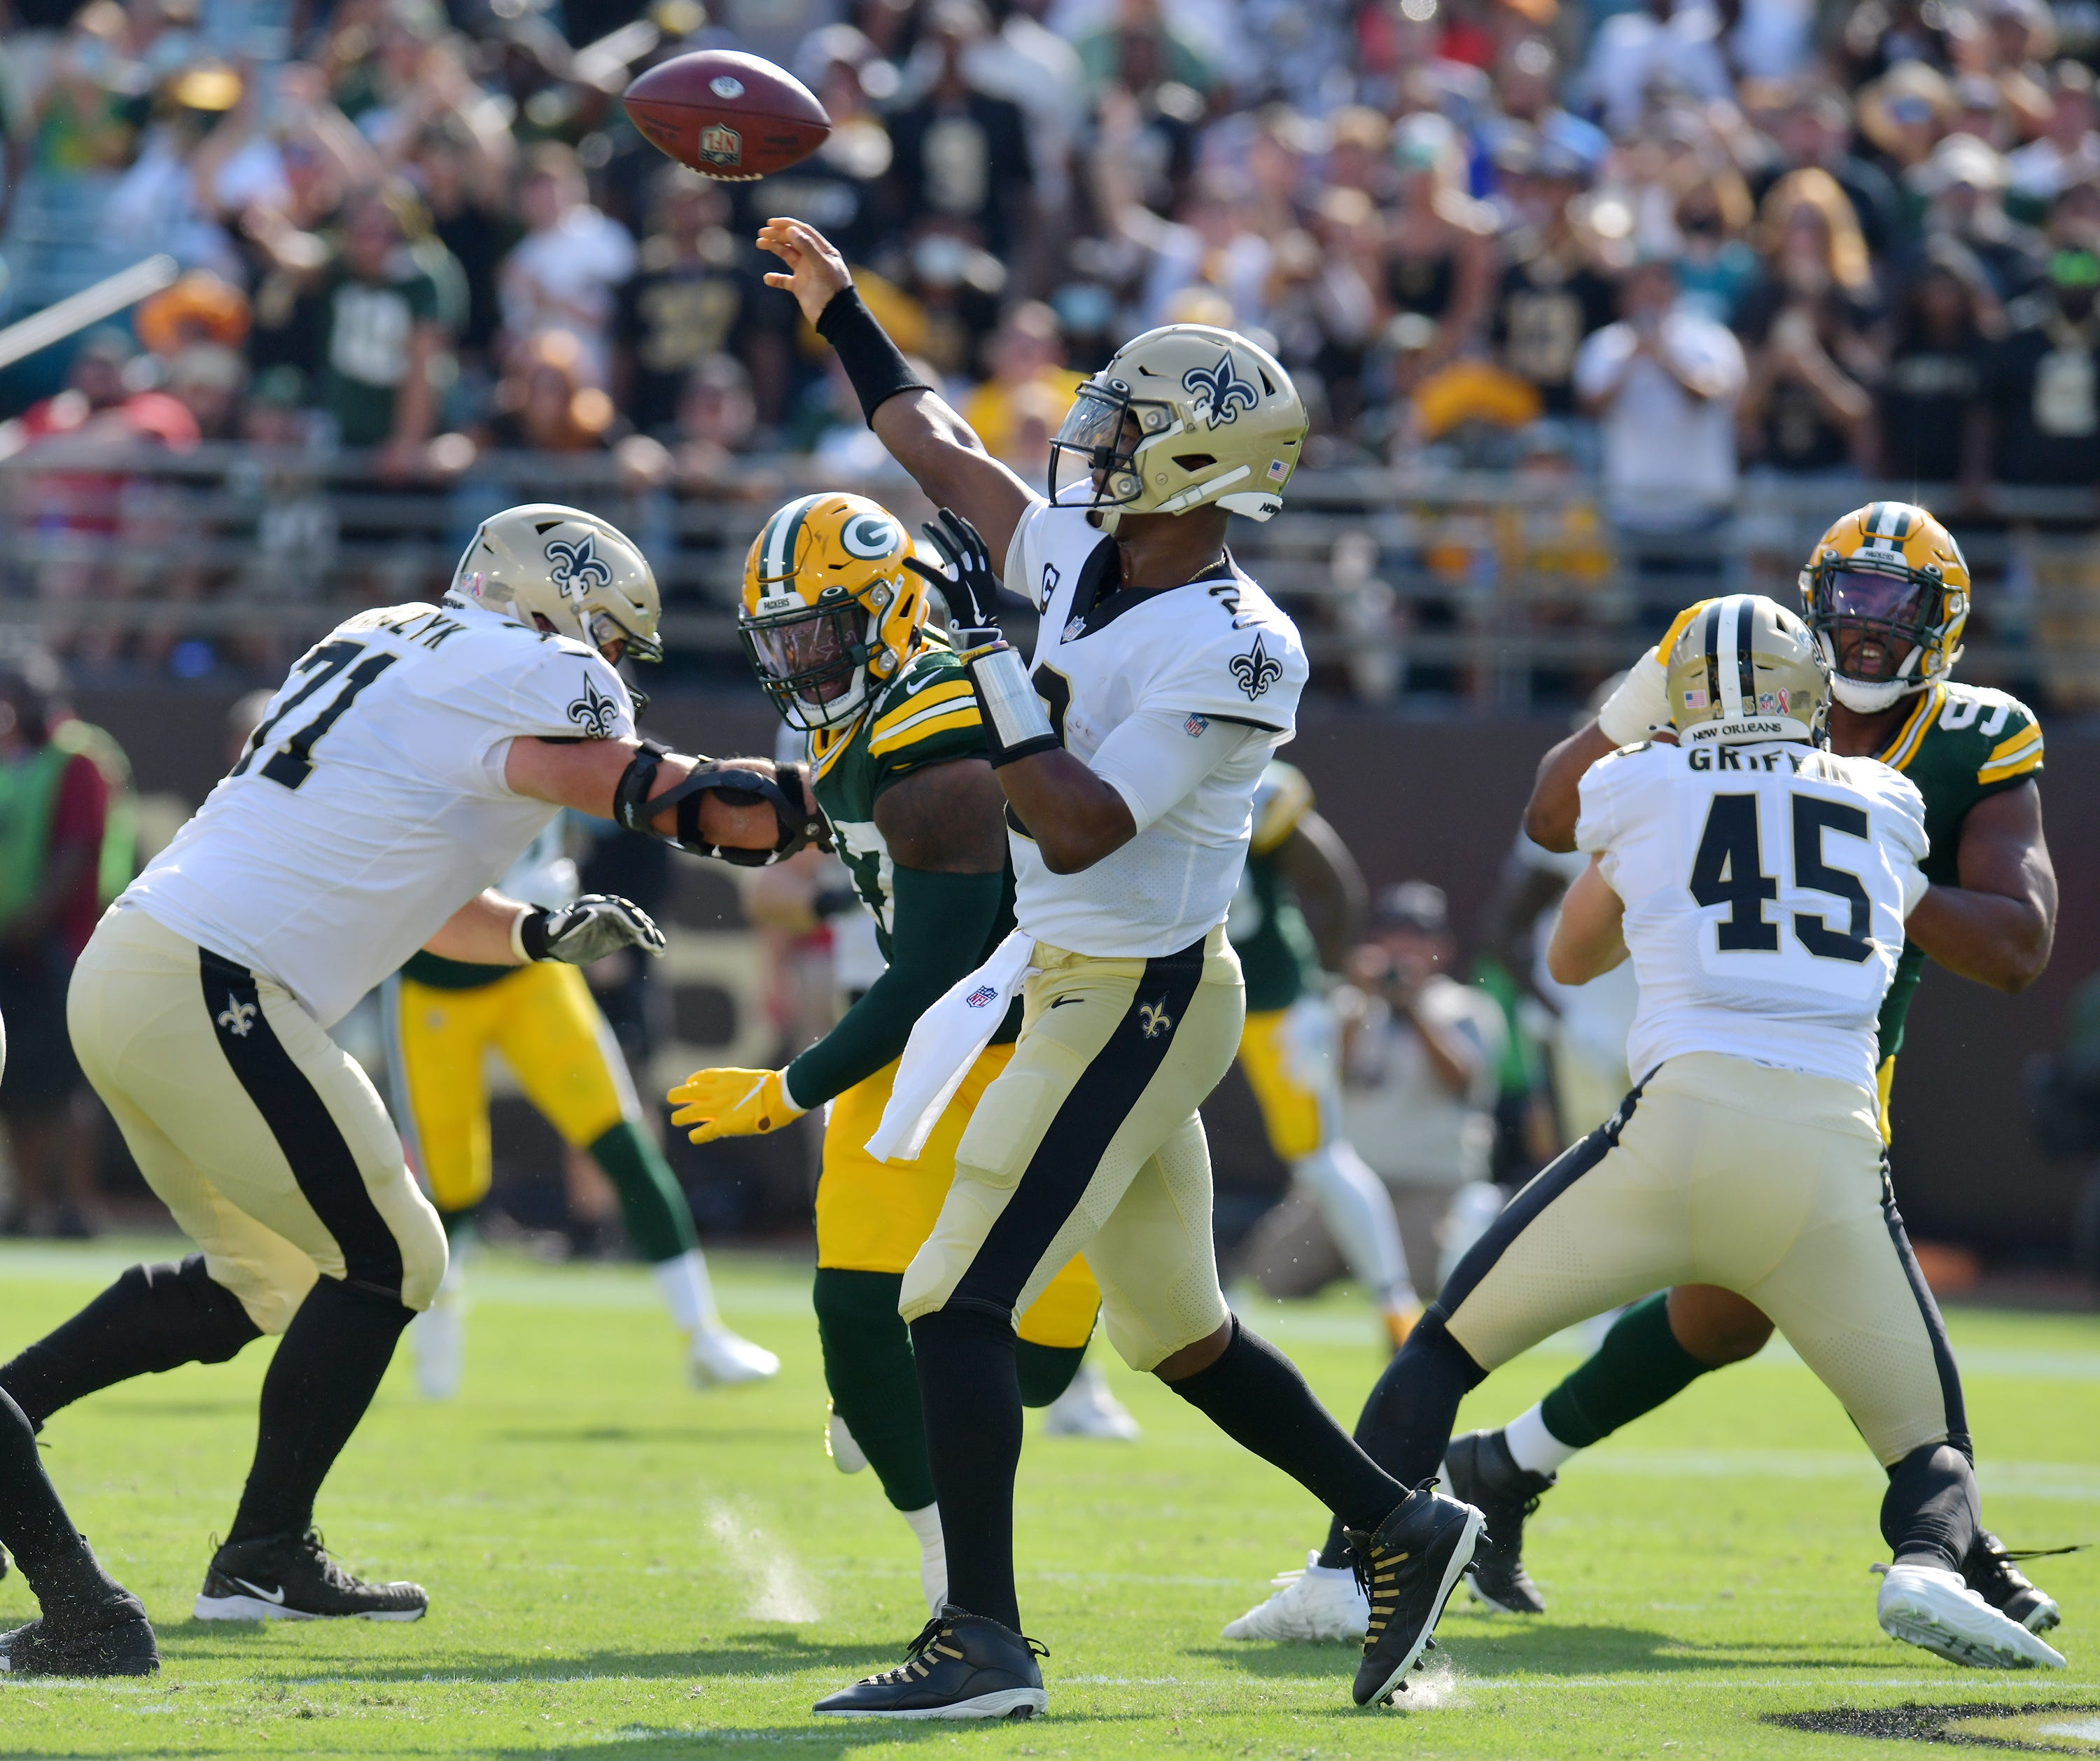 New Orleans Saints quarterback Jameis Winston (2) launches an early first quarter pass.